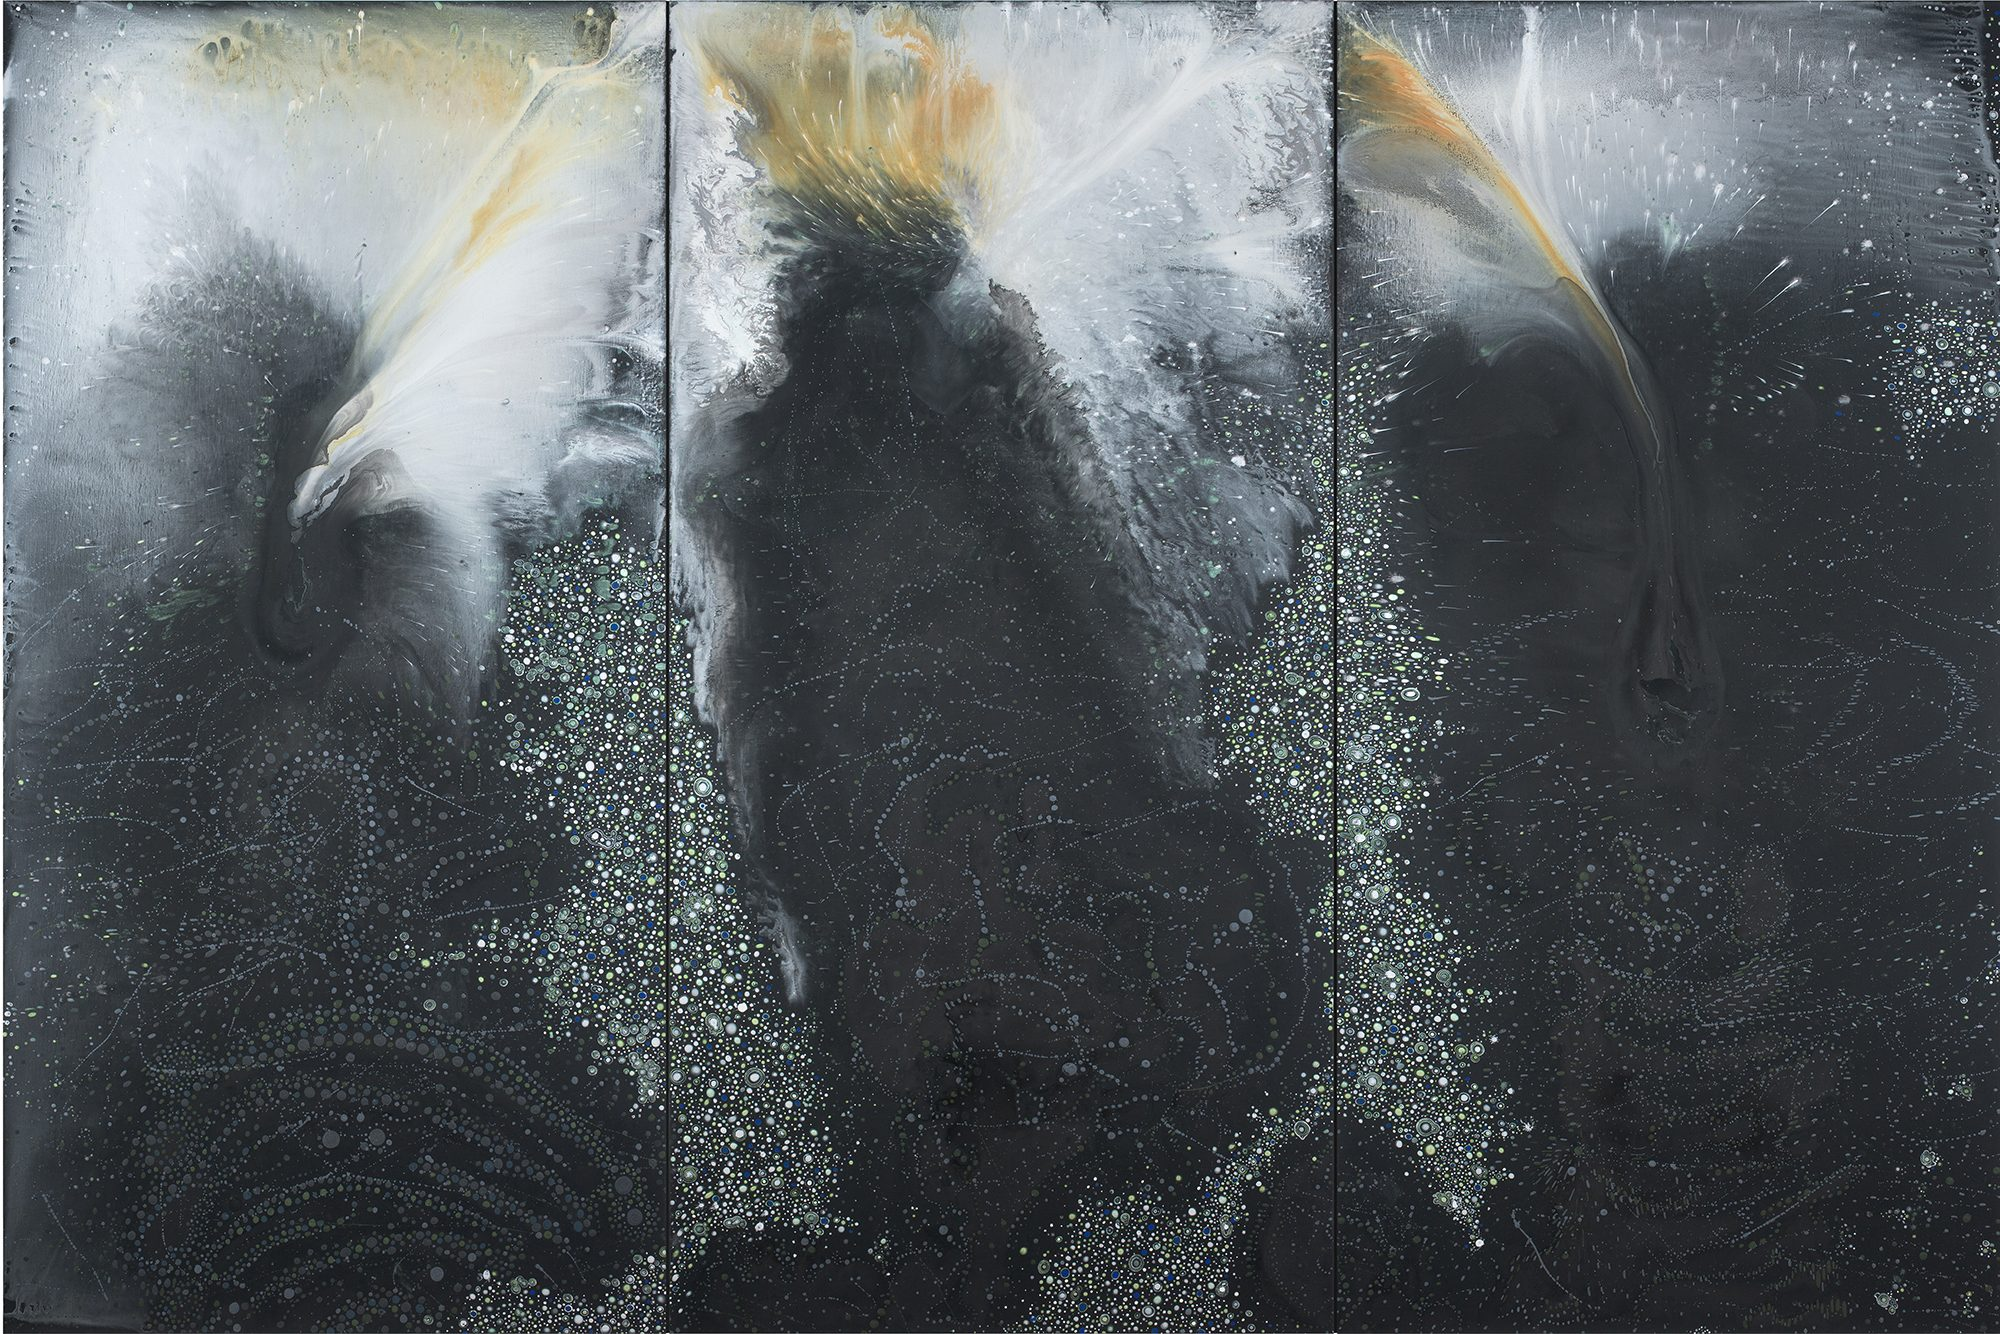 Barbara Takenaga (American, b. 1949) Black Triptych (blaze), 2016. Acrylic on linen, 72 x 108 in. Courtesy of DC Moore Gallery, New York